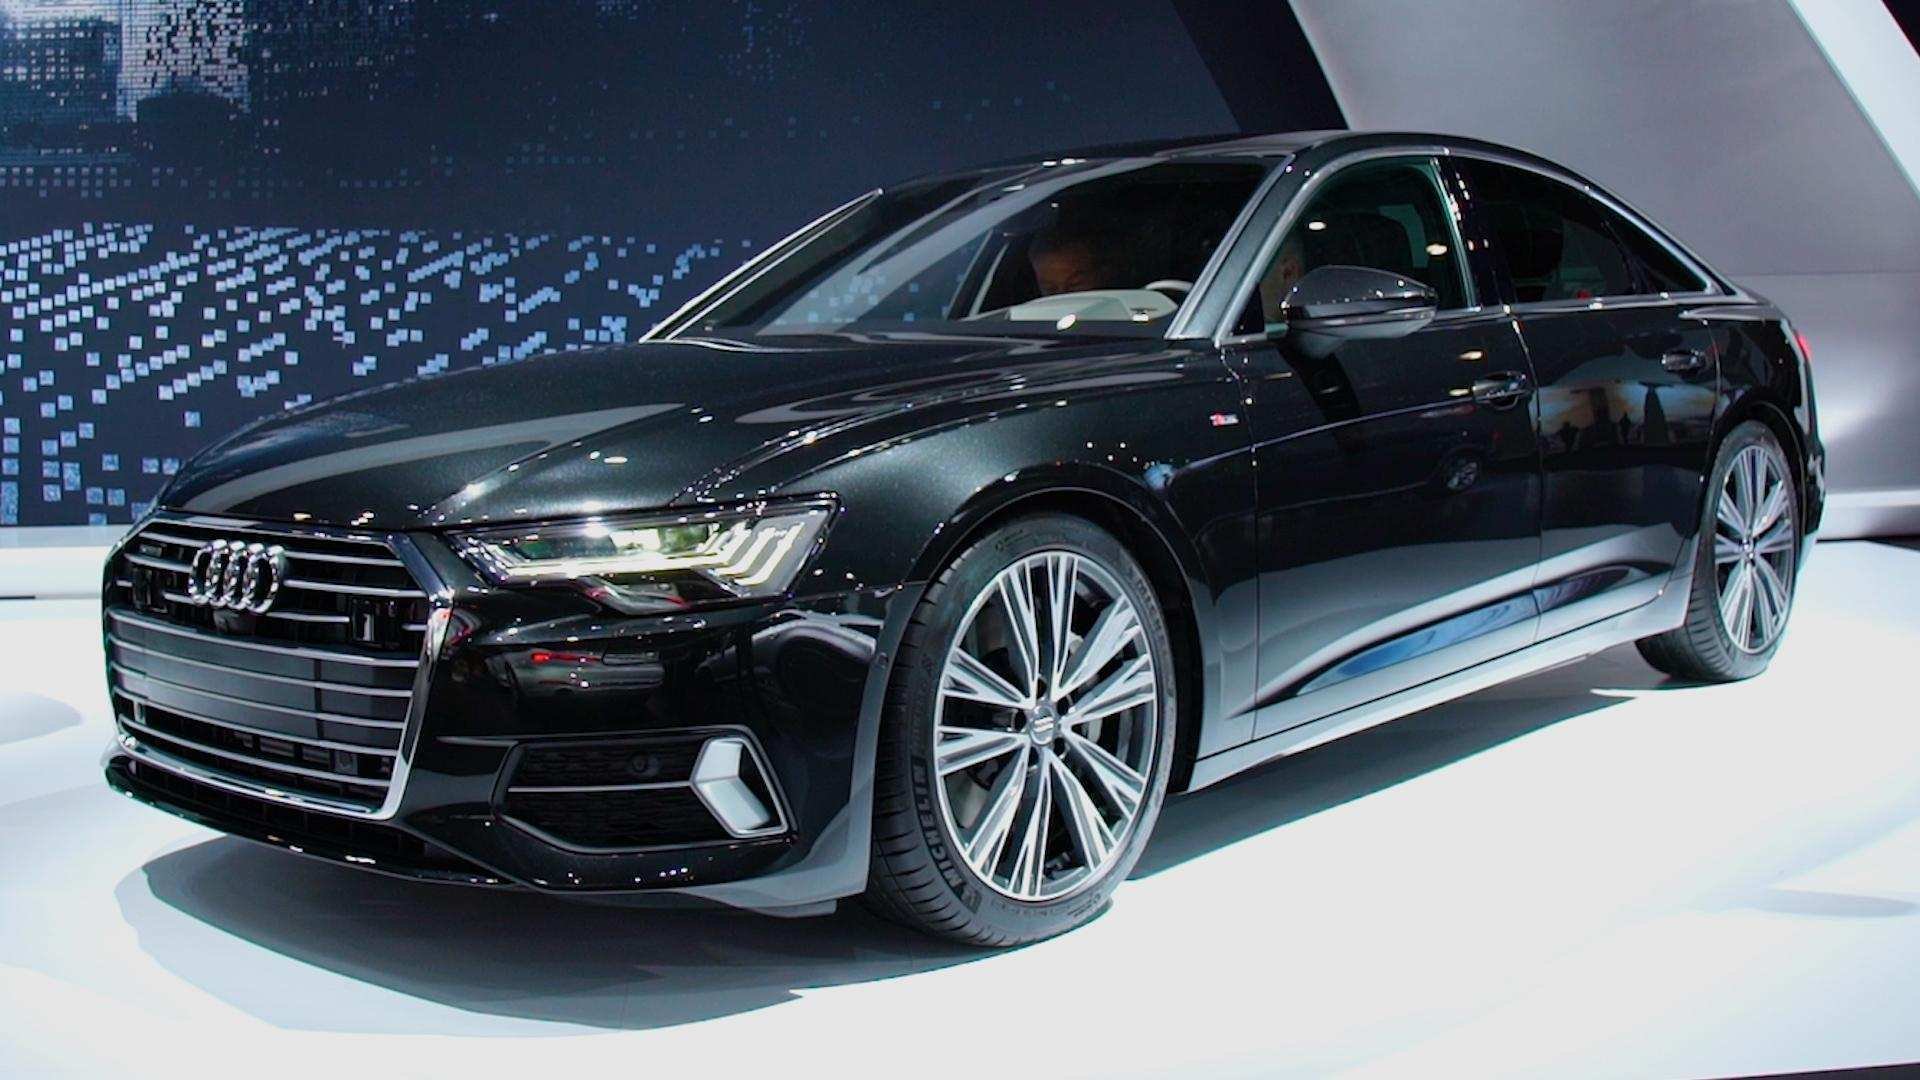 16 Concept of 2019 Audi A6 Release Date Usa Redesign by 2019 Audi A6 Release Date Usa